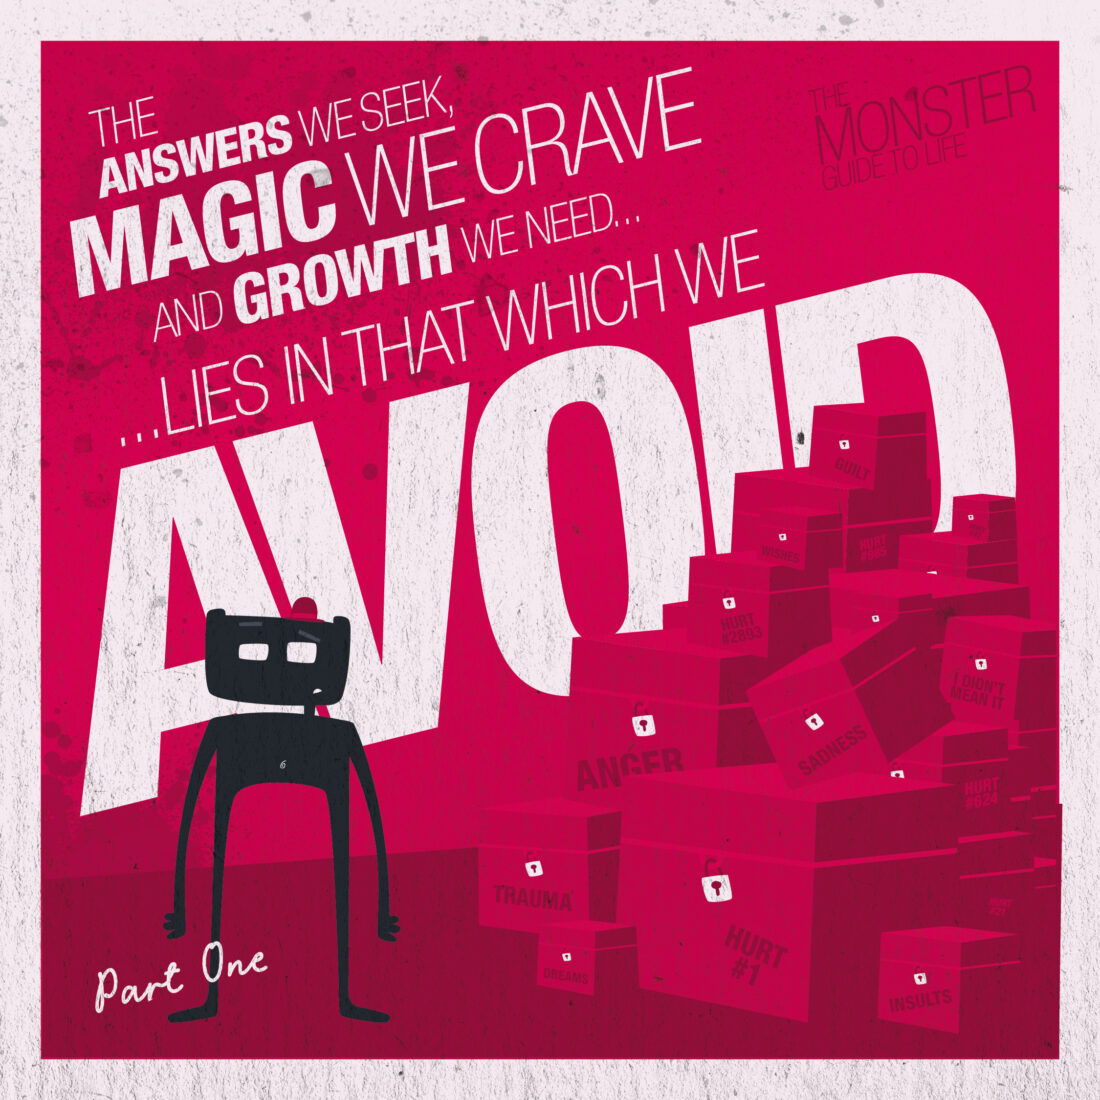 The answers we seek, magic we crave and growth we need, lies in that which we avoid